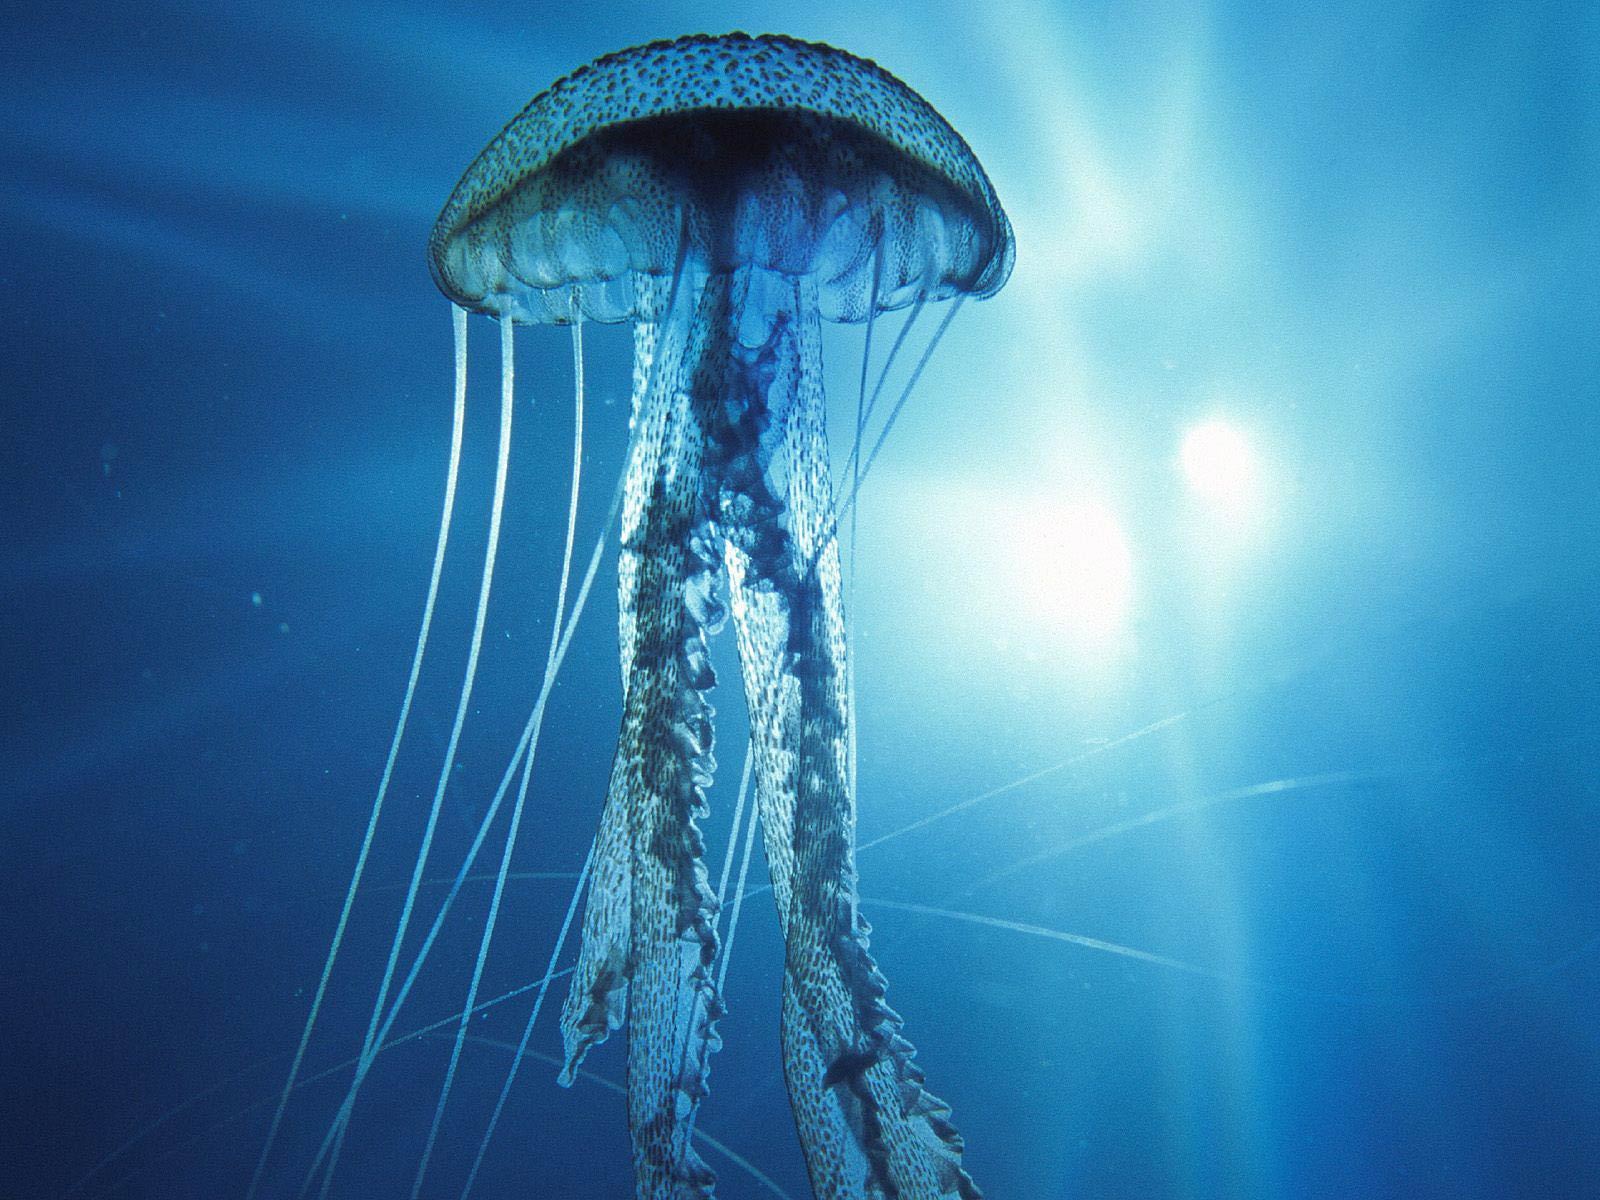 free Jellyfish wallpaper wallpapers download